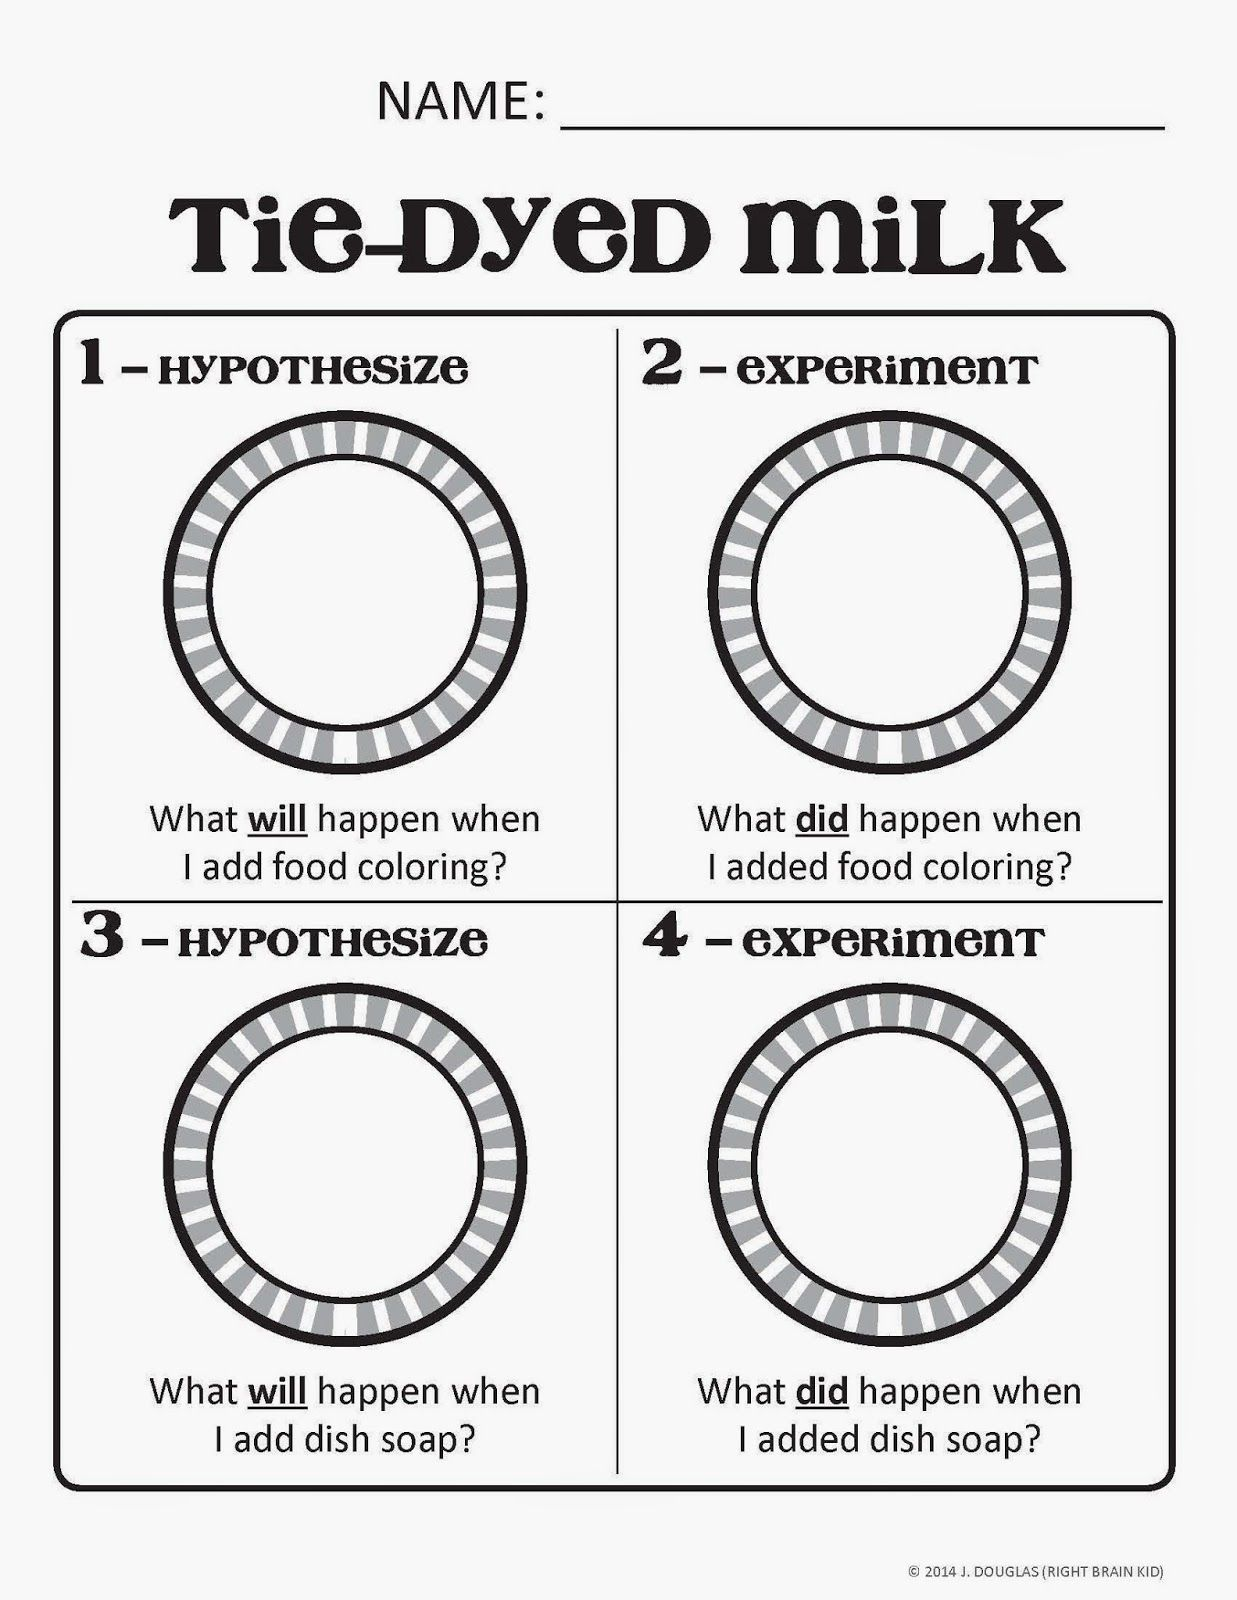 Activity Sheet To Go With The Milk And Food Coloring